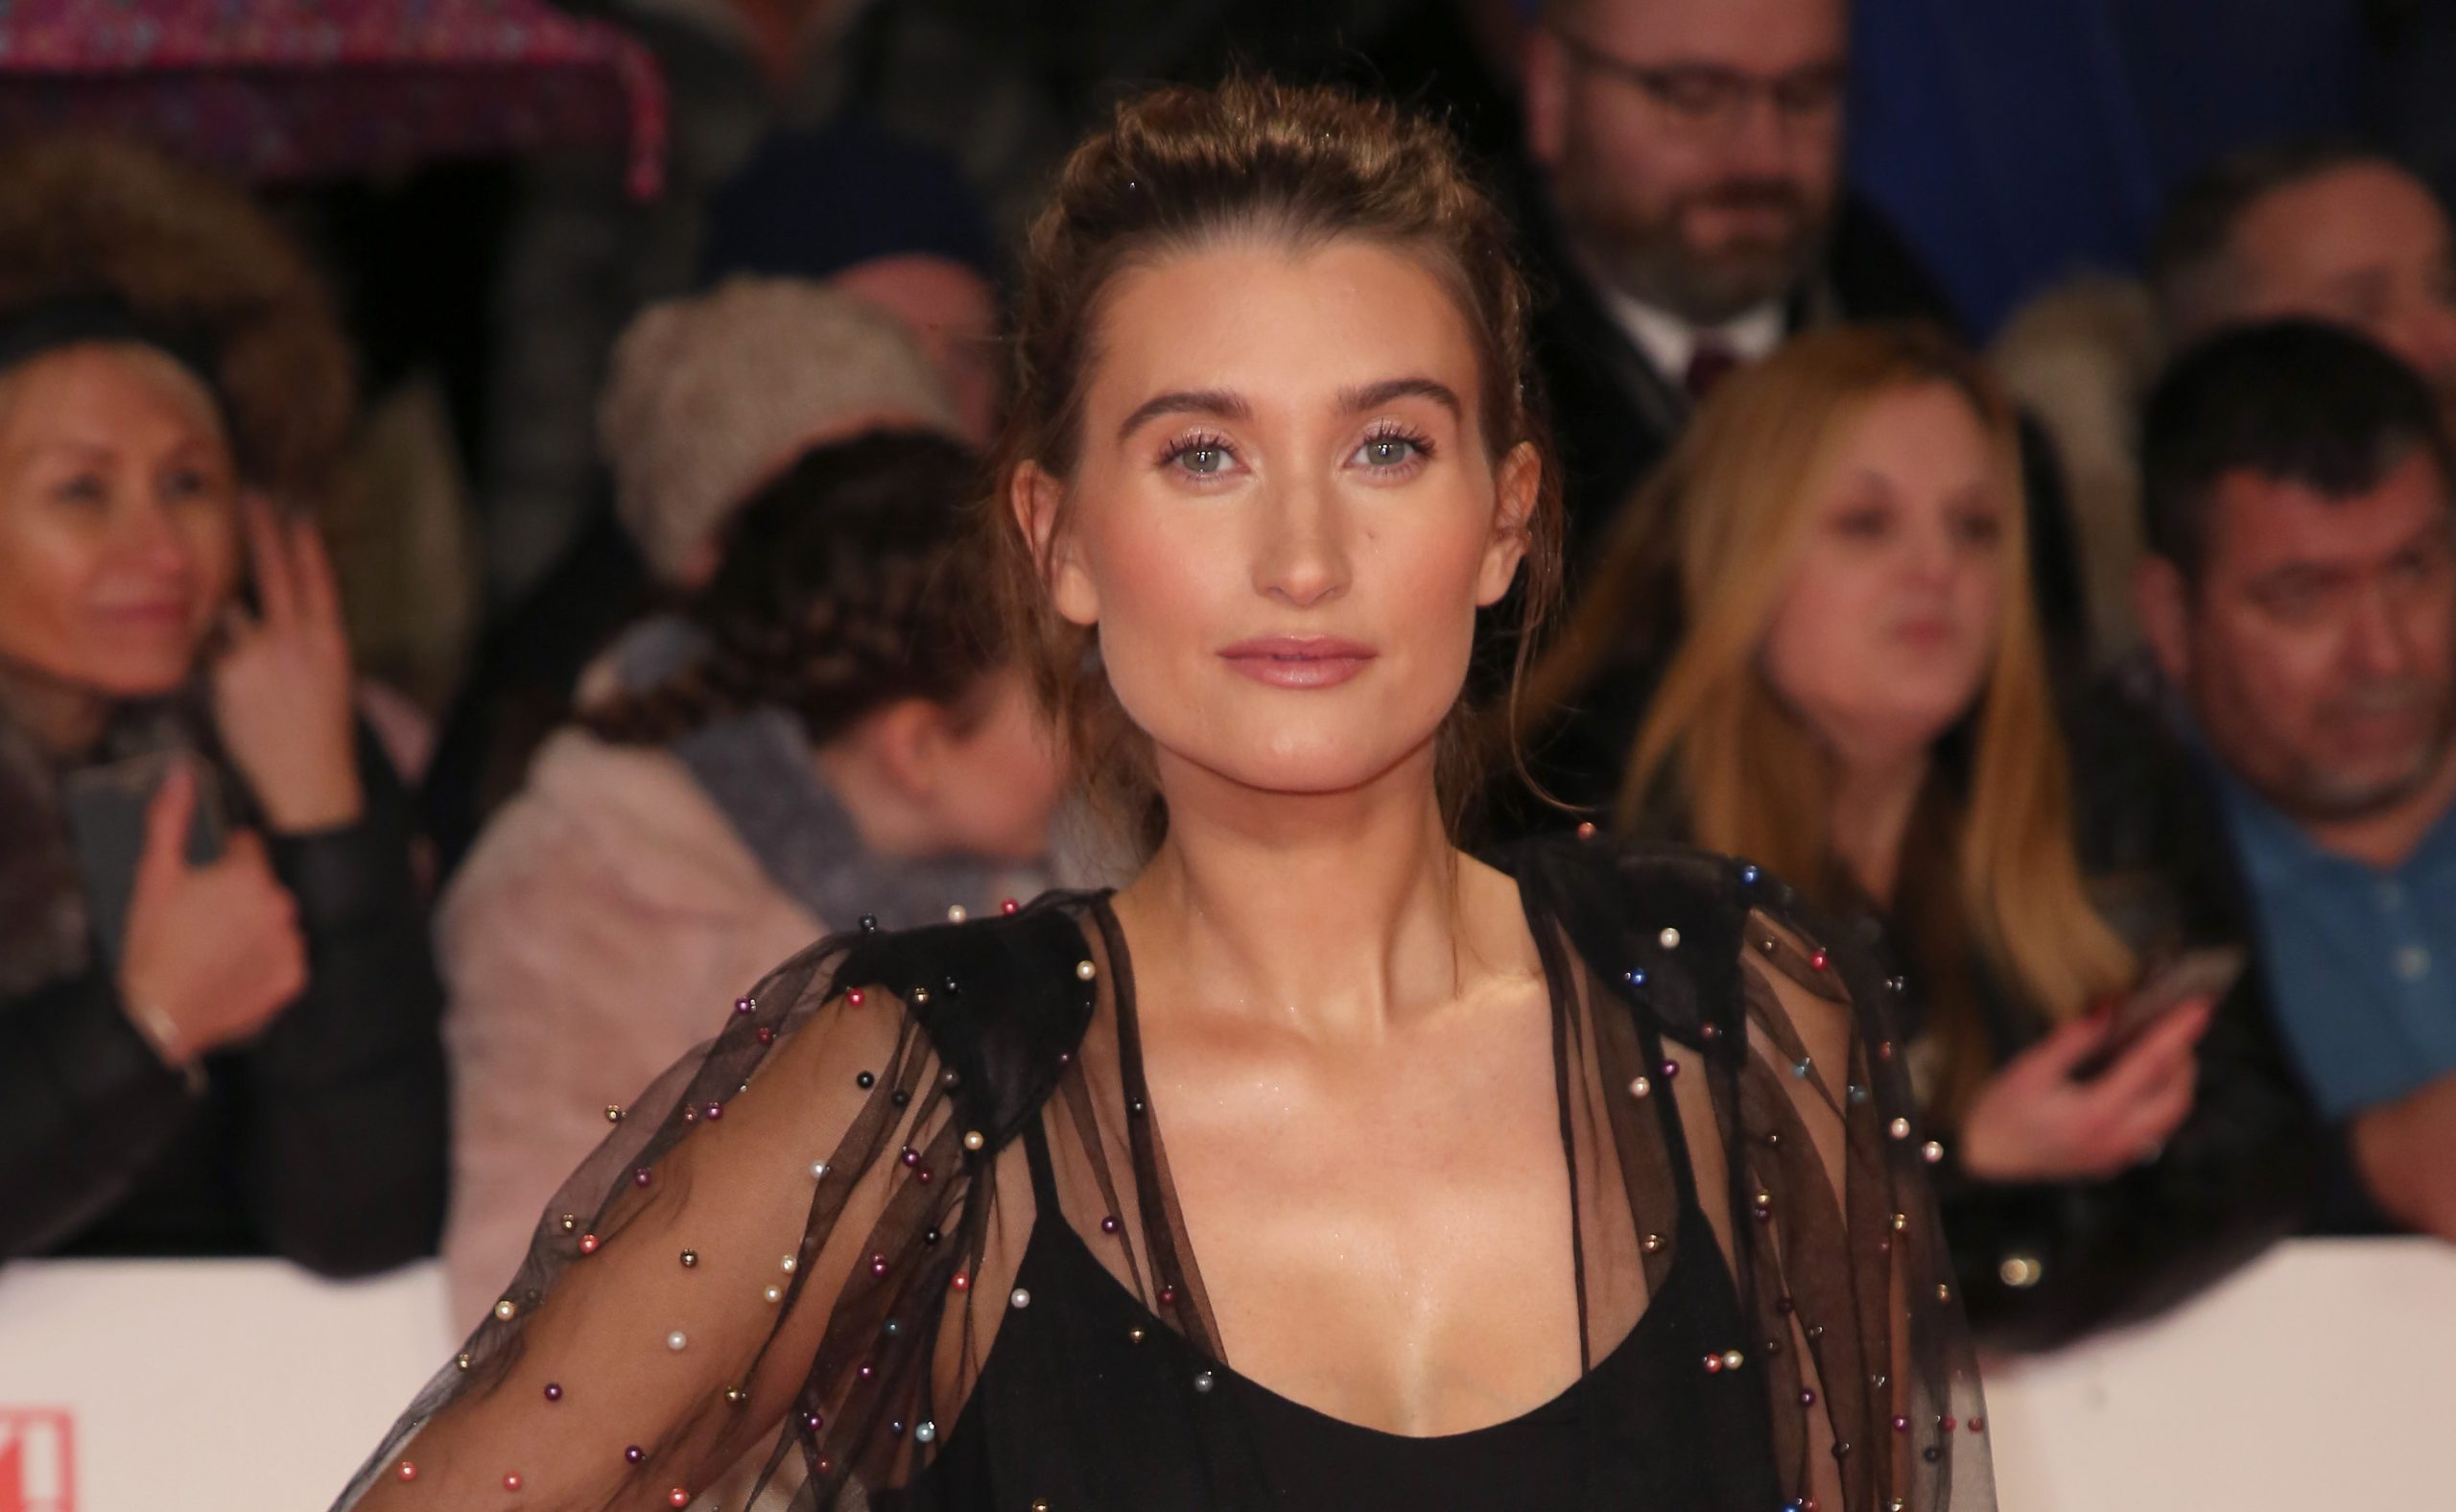 Emmerdale star Charley Webb reveals abuse as she did supermarket shop